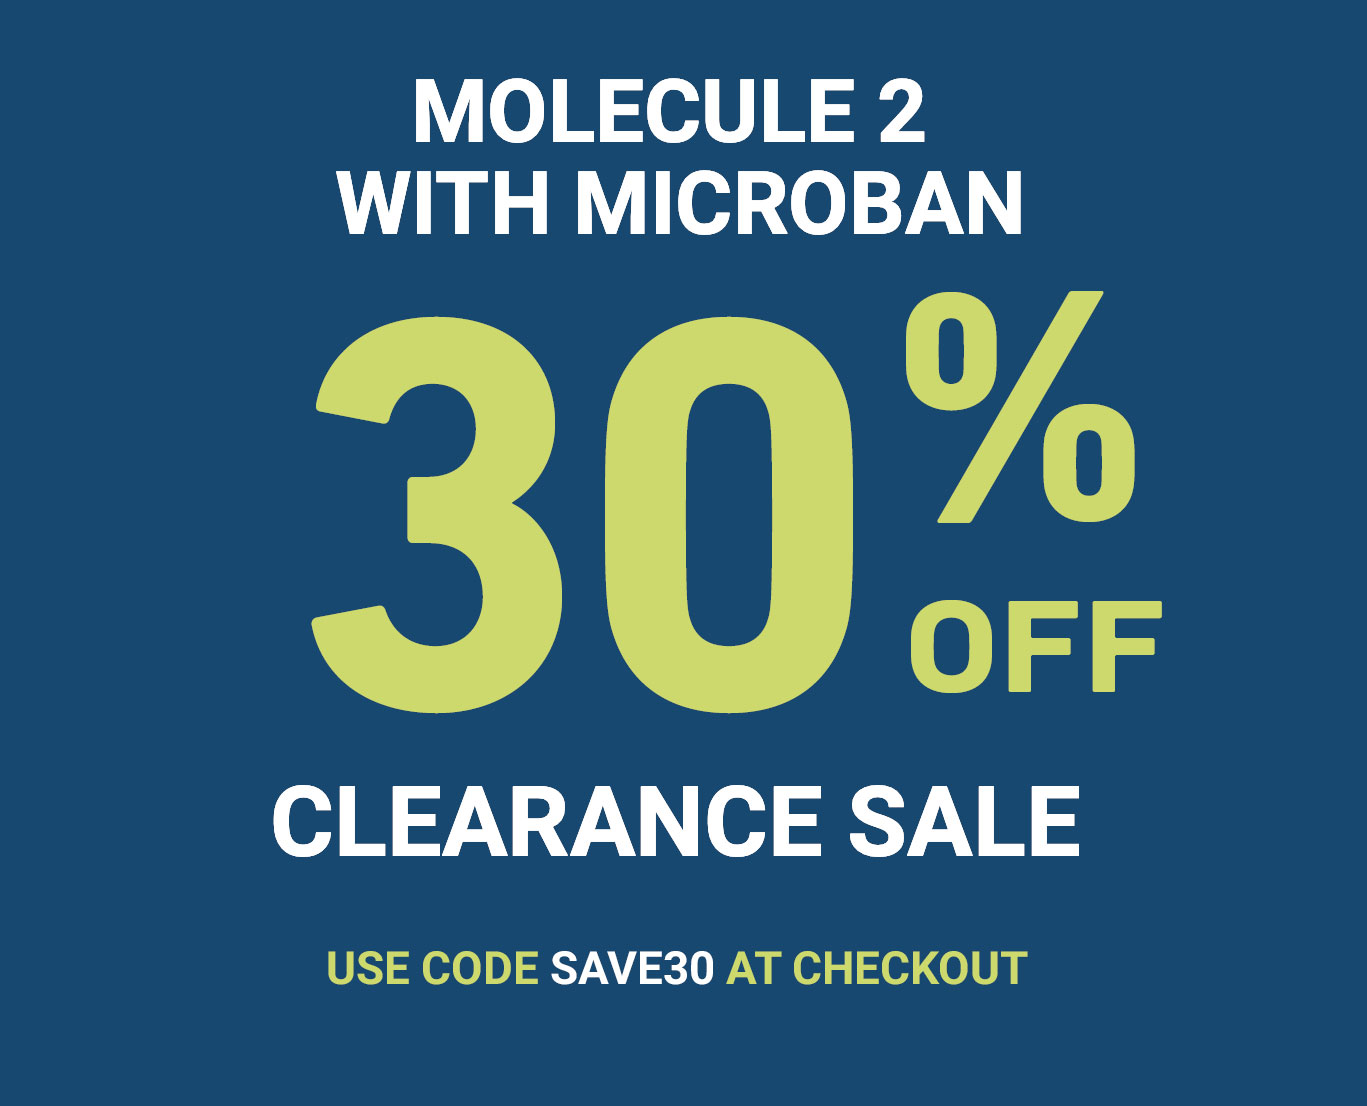 Save 30% off MOLECULE 2 with Microban with code SAVE30